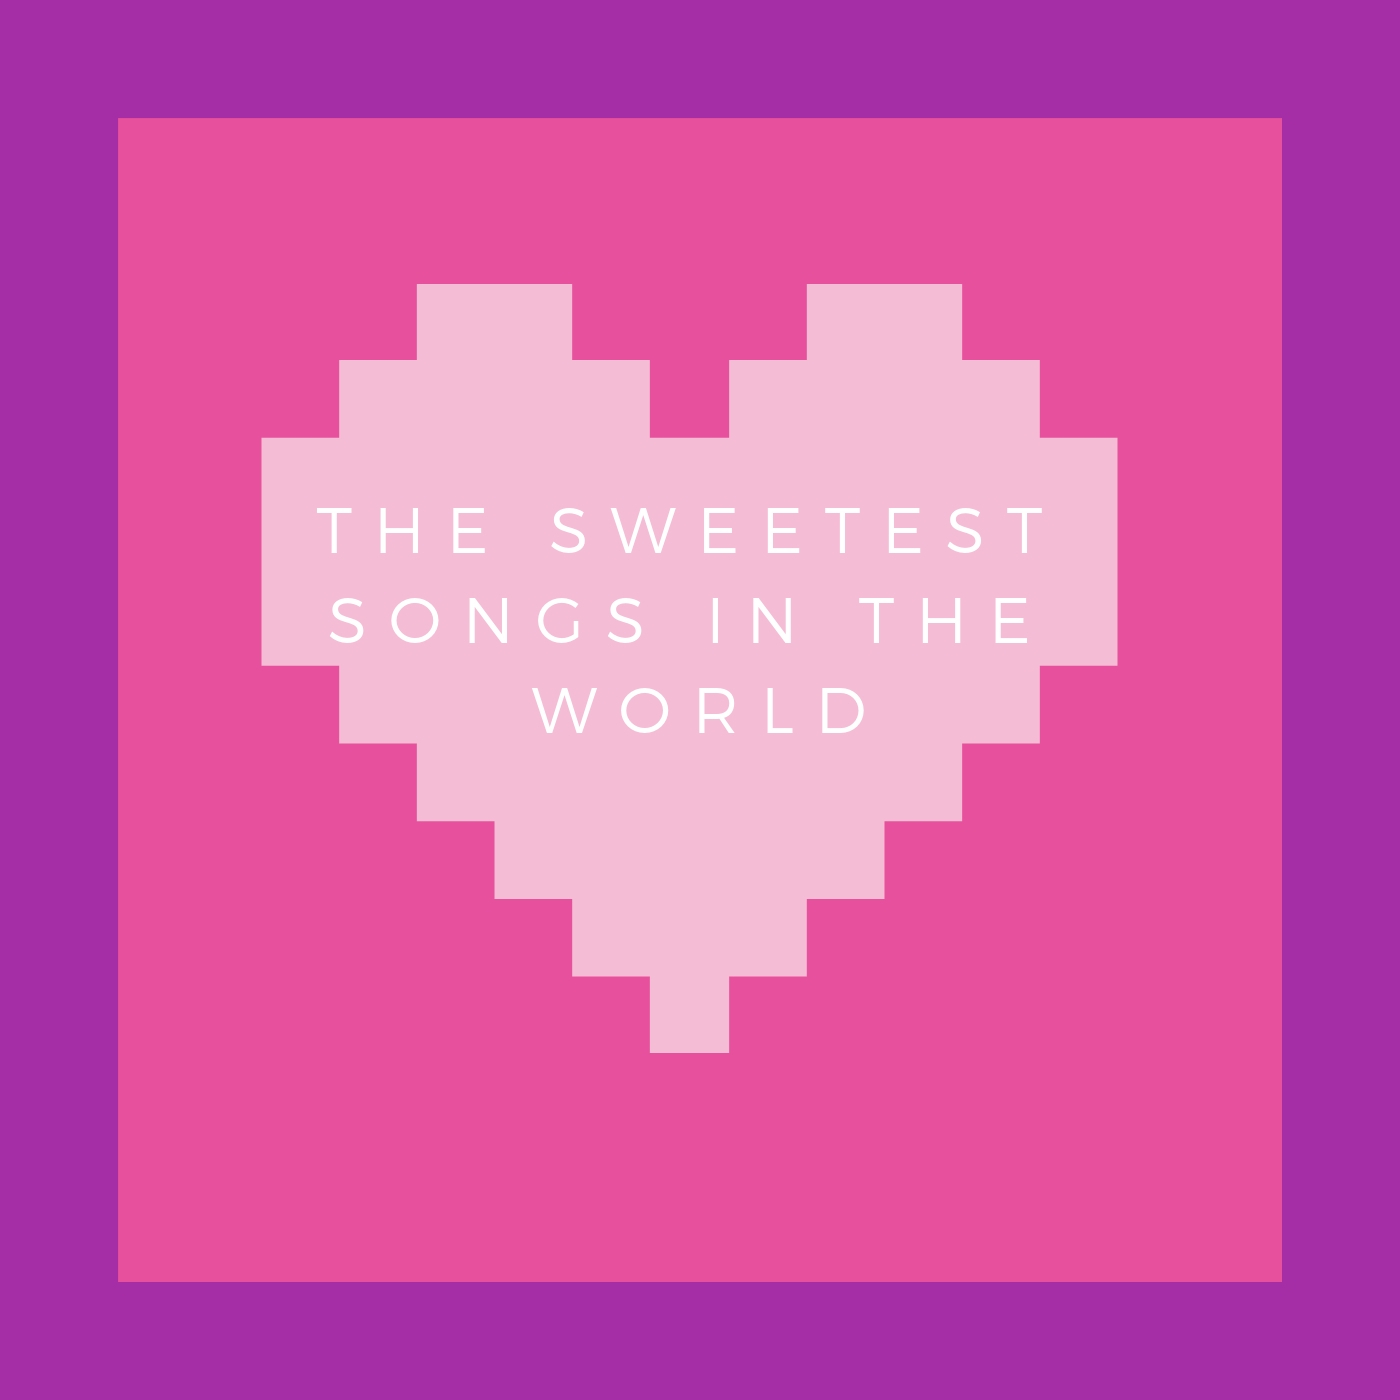 the sweetest songs in the world - These are some of the best, most precious love songs!!